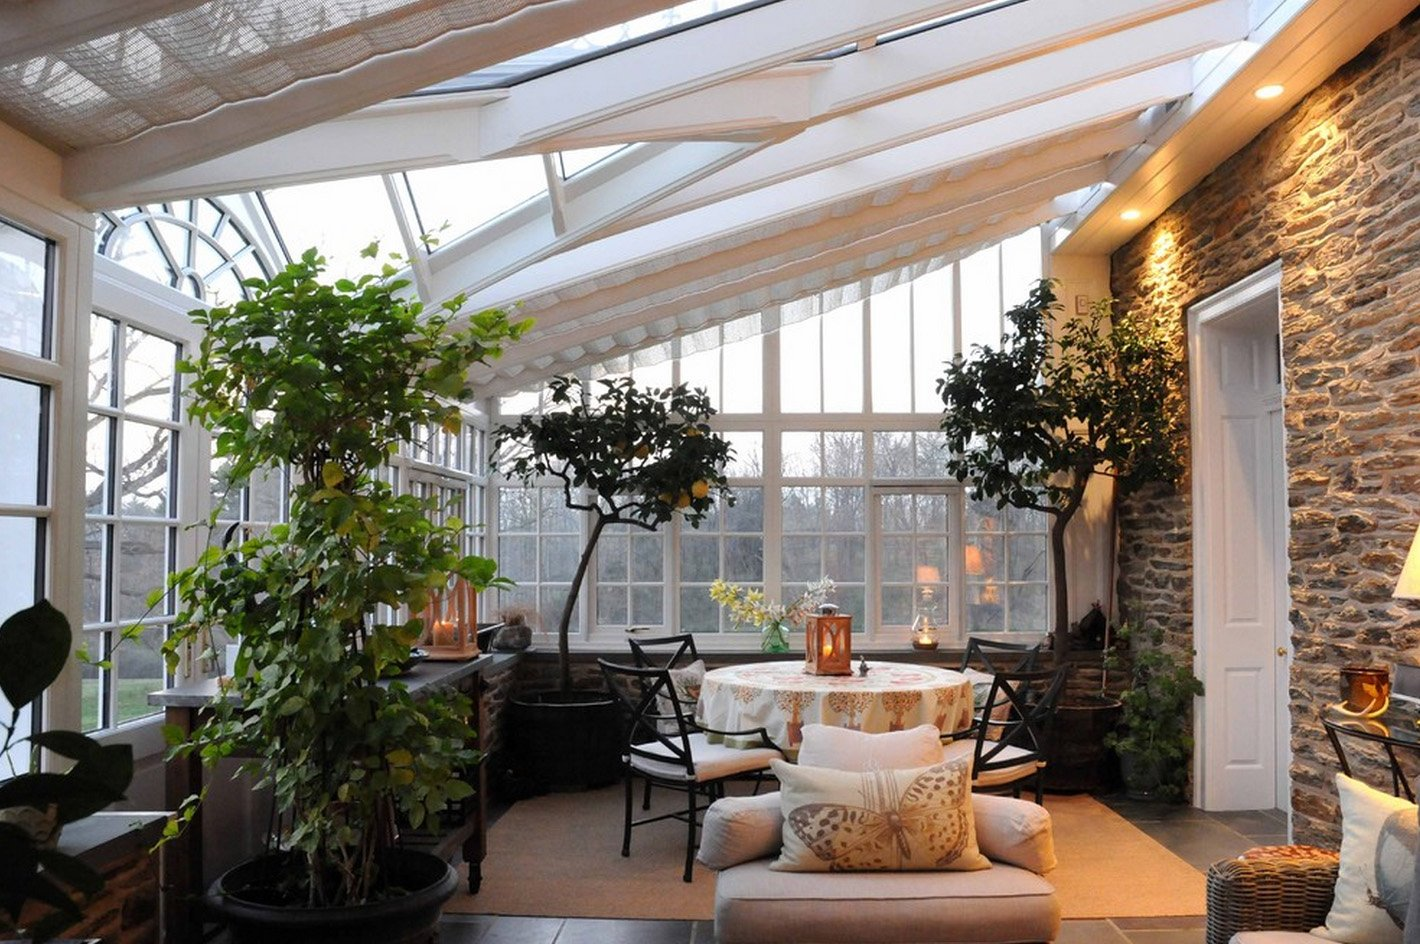 Home Decor Inside Outside: Come Arredare Una Veranda Coperta: Consigli E Suggerimenti